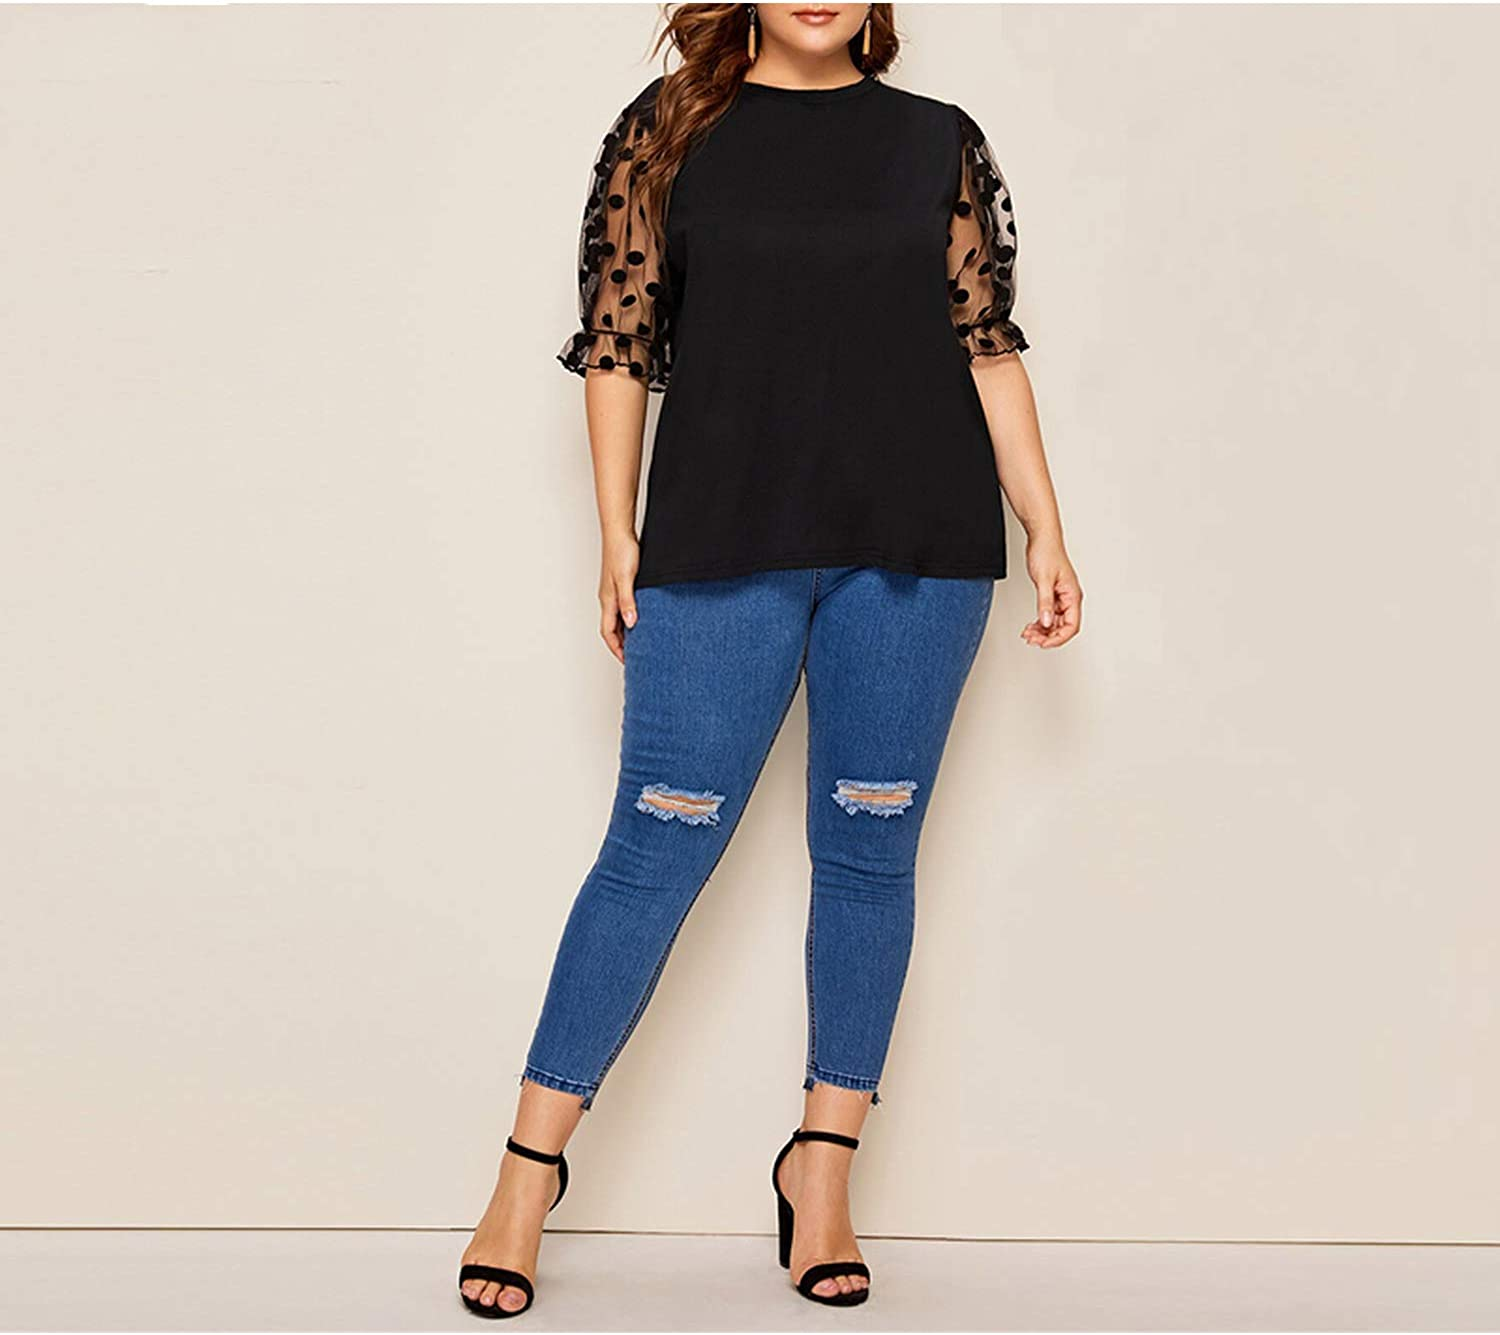 Plus Size Black Polka Dot Patchwork Puff Sleeve Tee Women 2019 Summer Casual Half Solid Top-in T